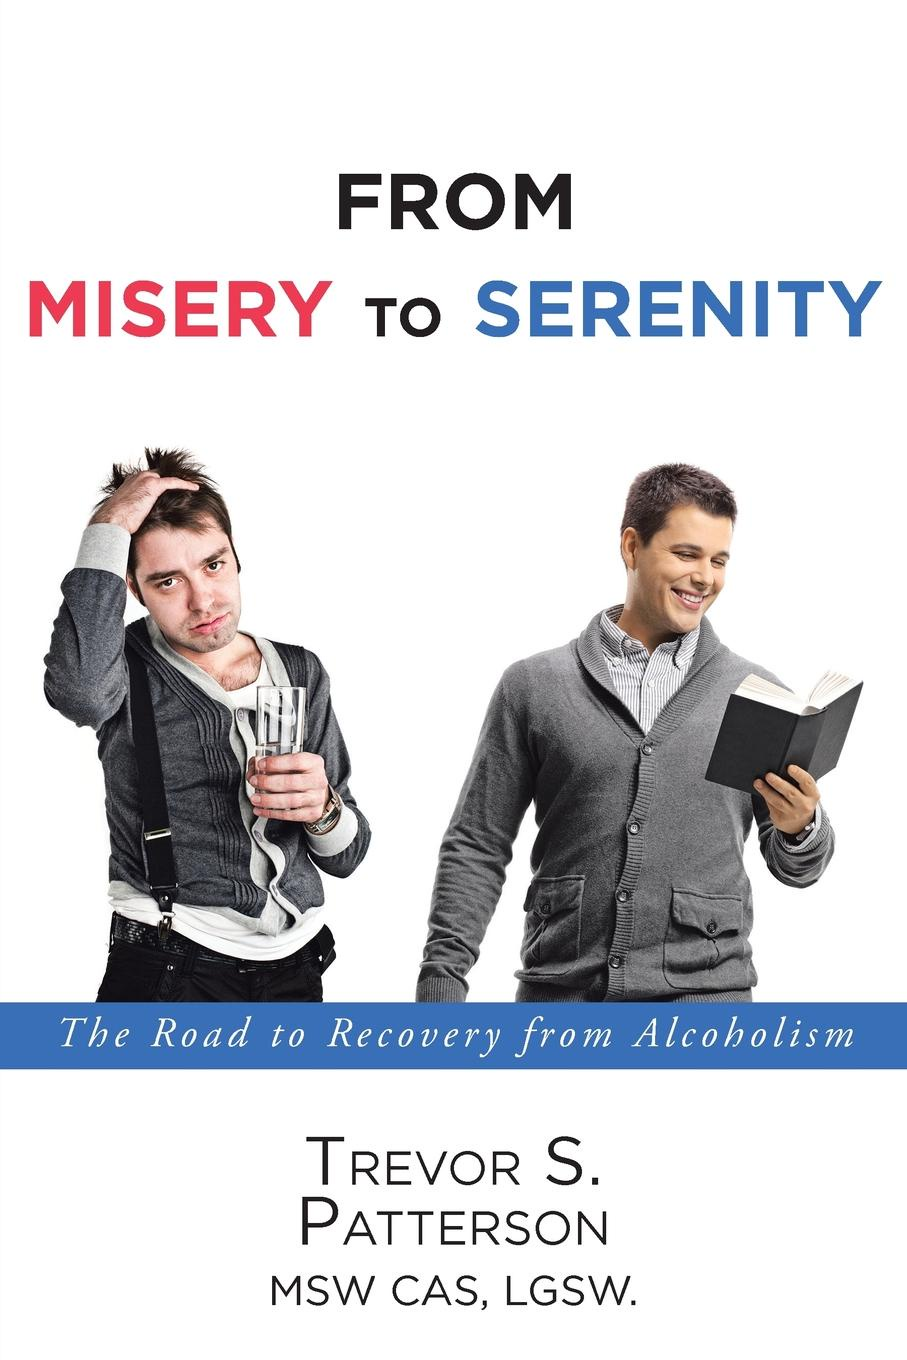 Trevor S. Patterson MSW CAS LGSW From Misery to Serenity. The Road to Recovery from Alcoholism a road to recovery